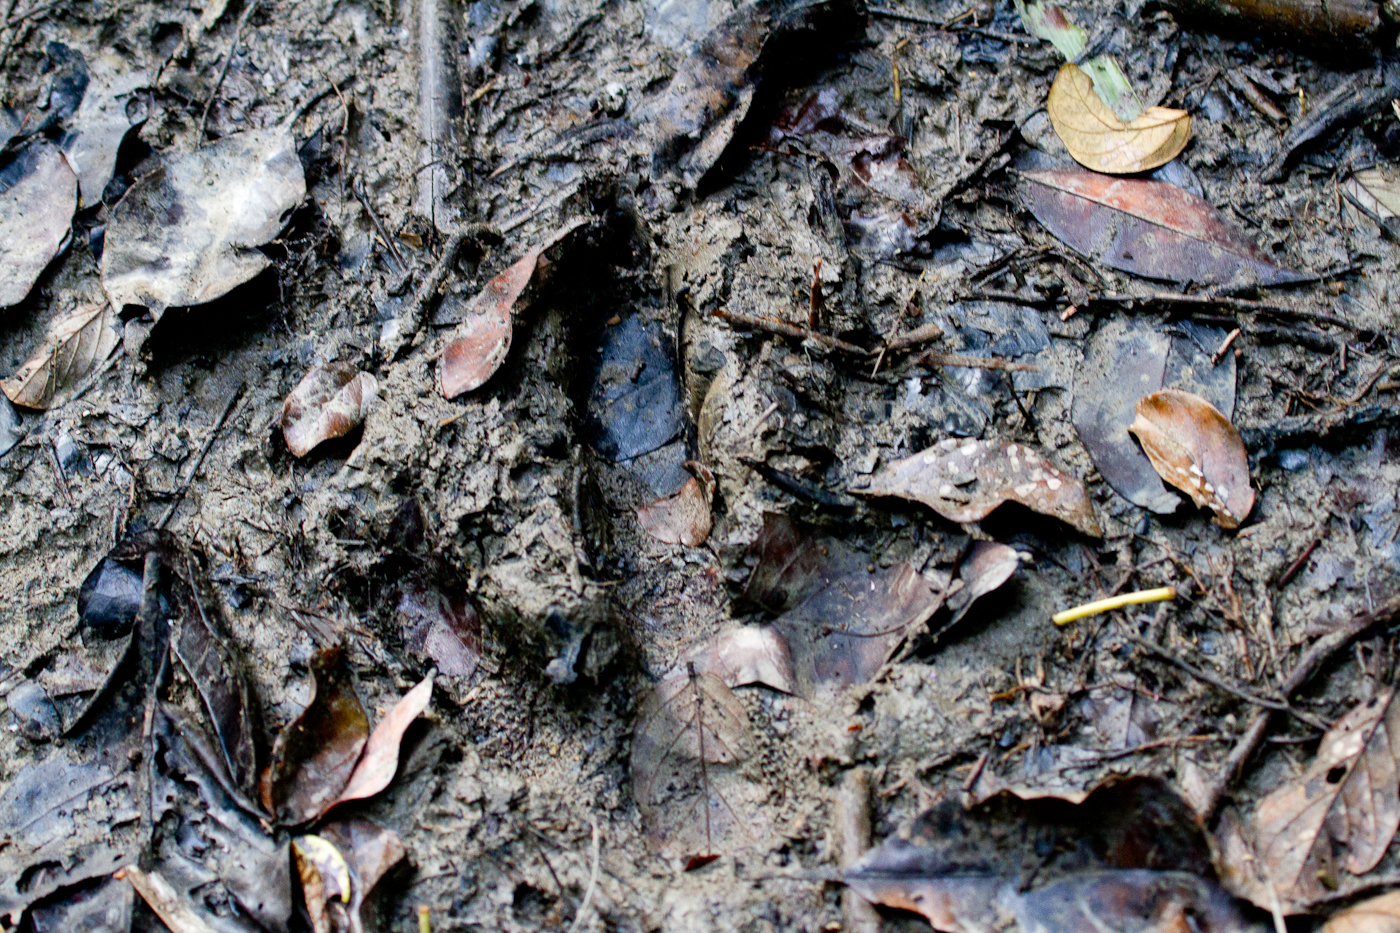 Cassowary print! This is as close as we got to the 'yeti of birds'